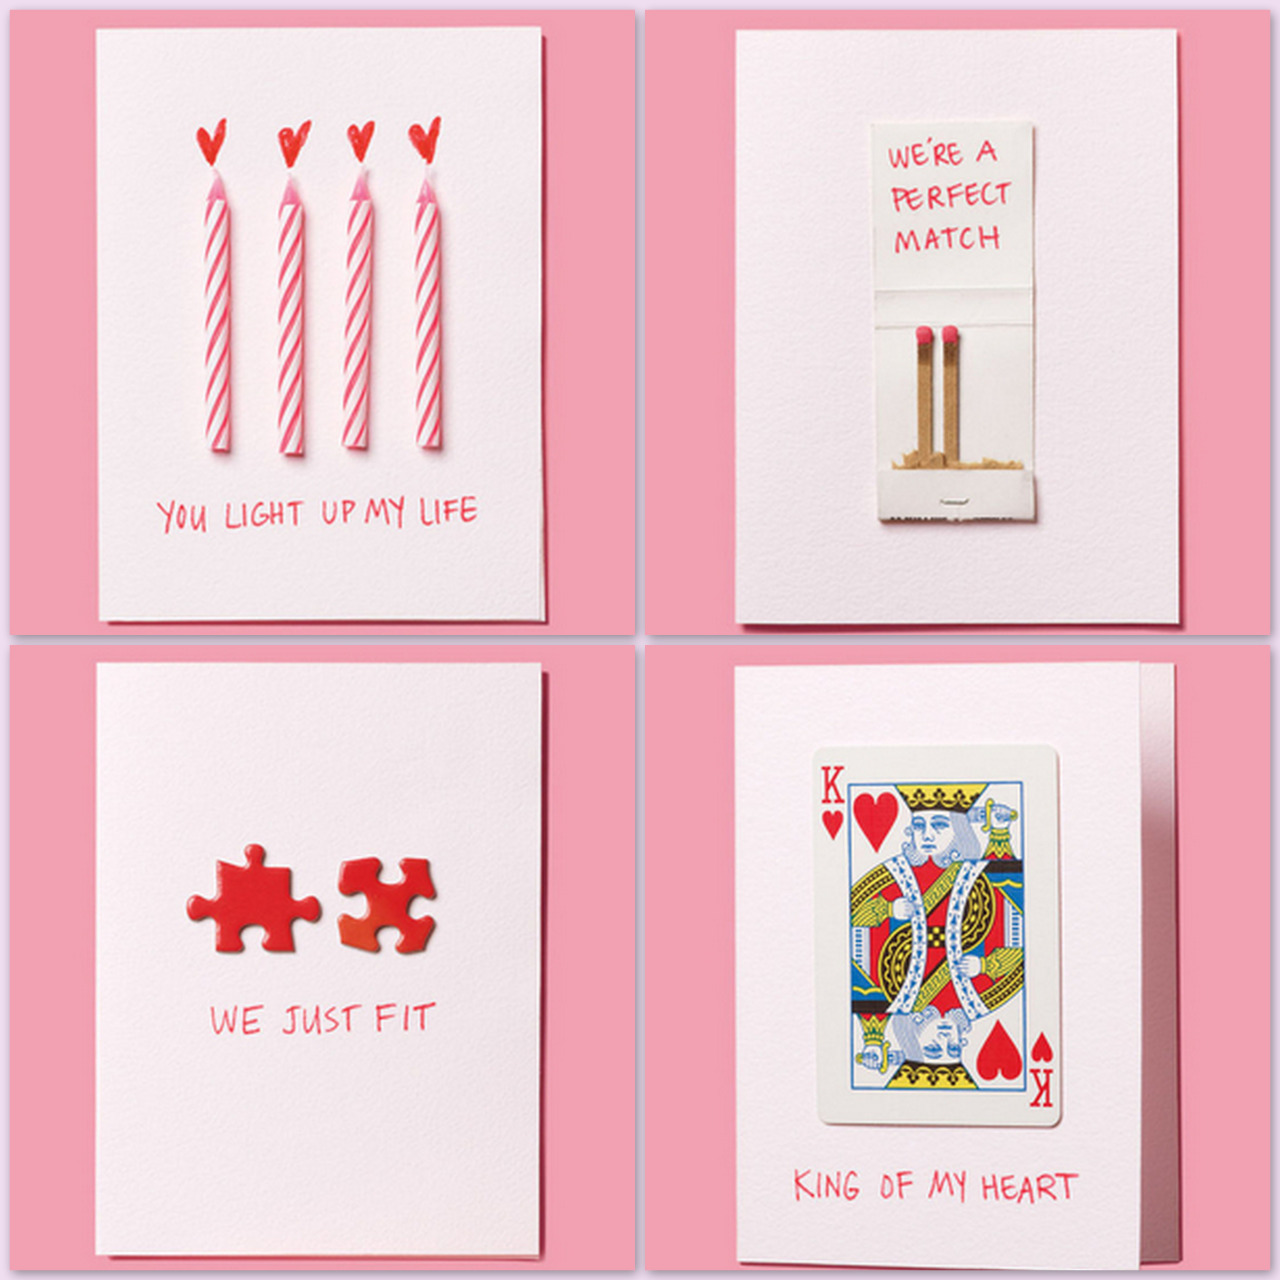 The curious case of valentine 39 s day cracked open the for Valentines day cute ideas